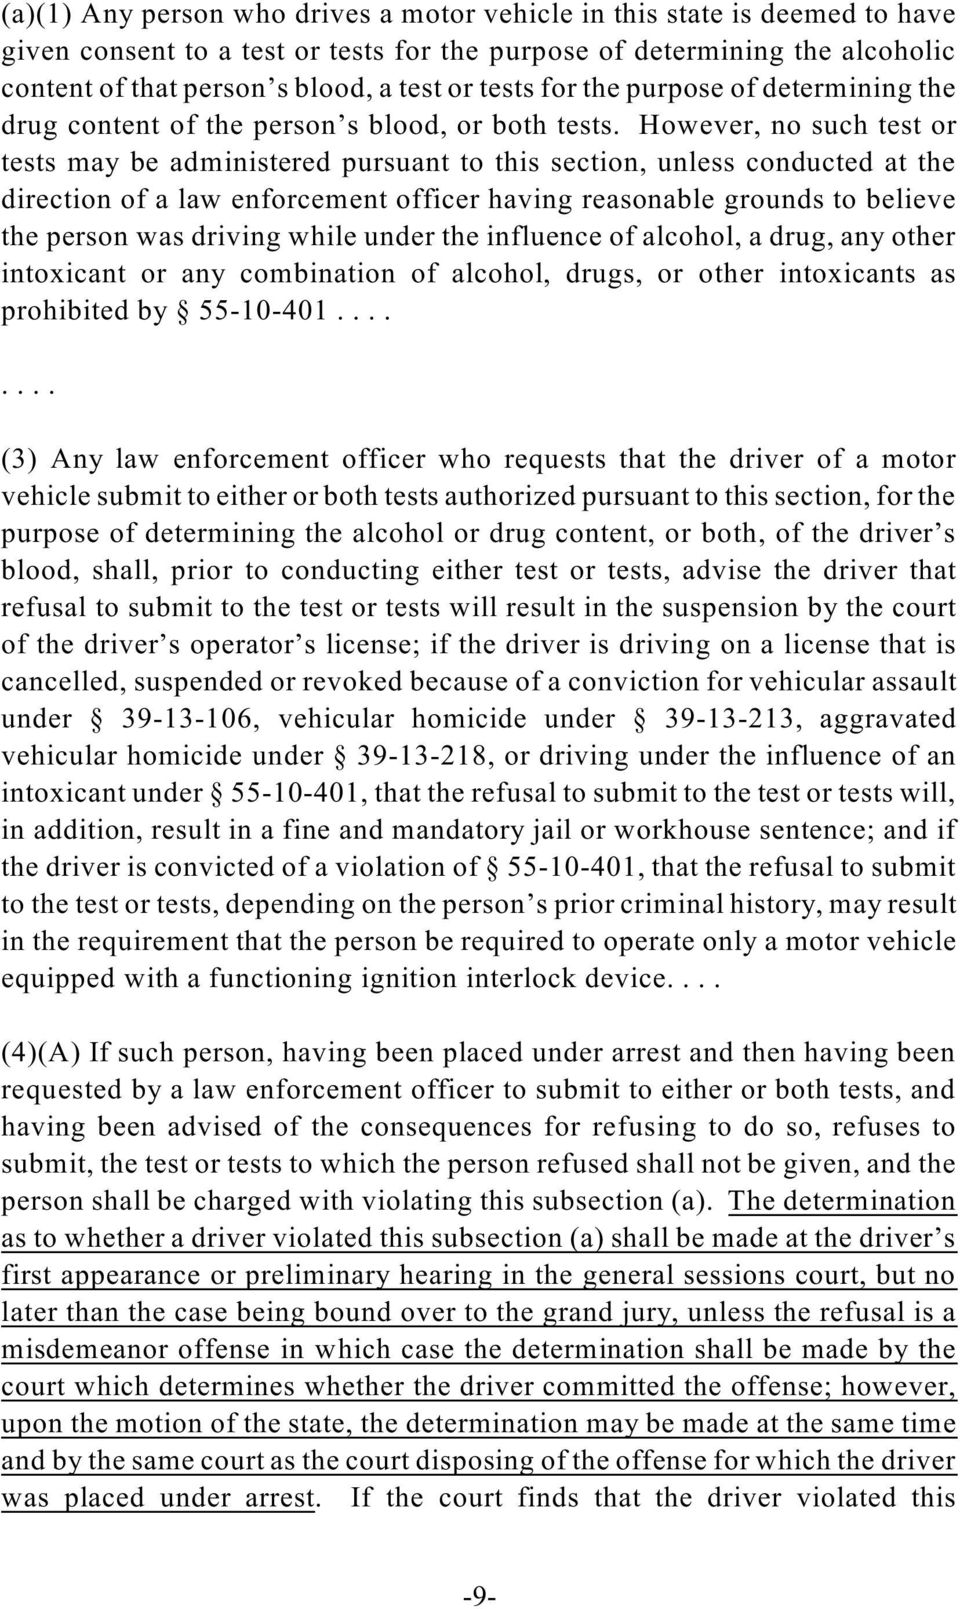 However, no such test or tests may be administered pursuant to this section, unless conducted at the direction of a law enforcement officer having reasonable grounds to believe the person was driving